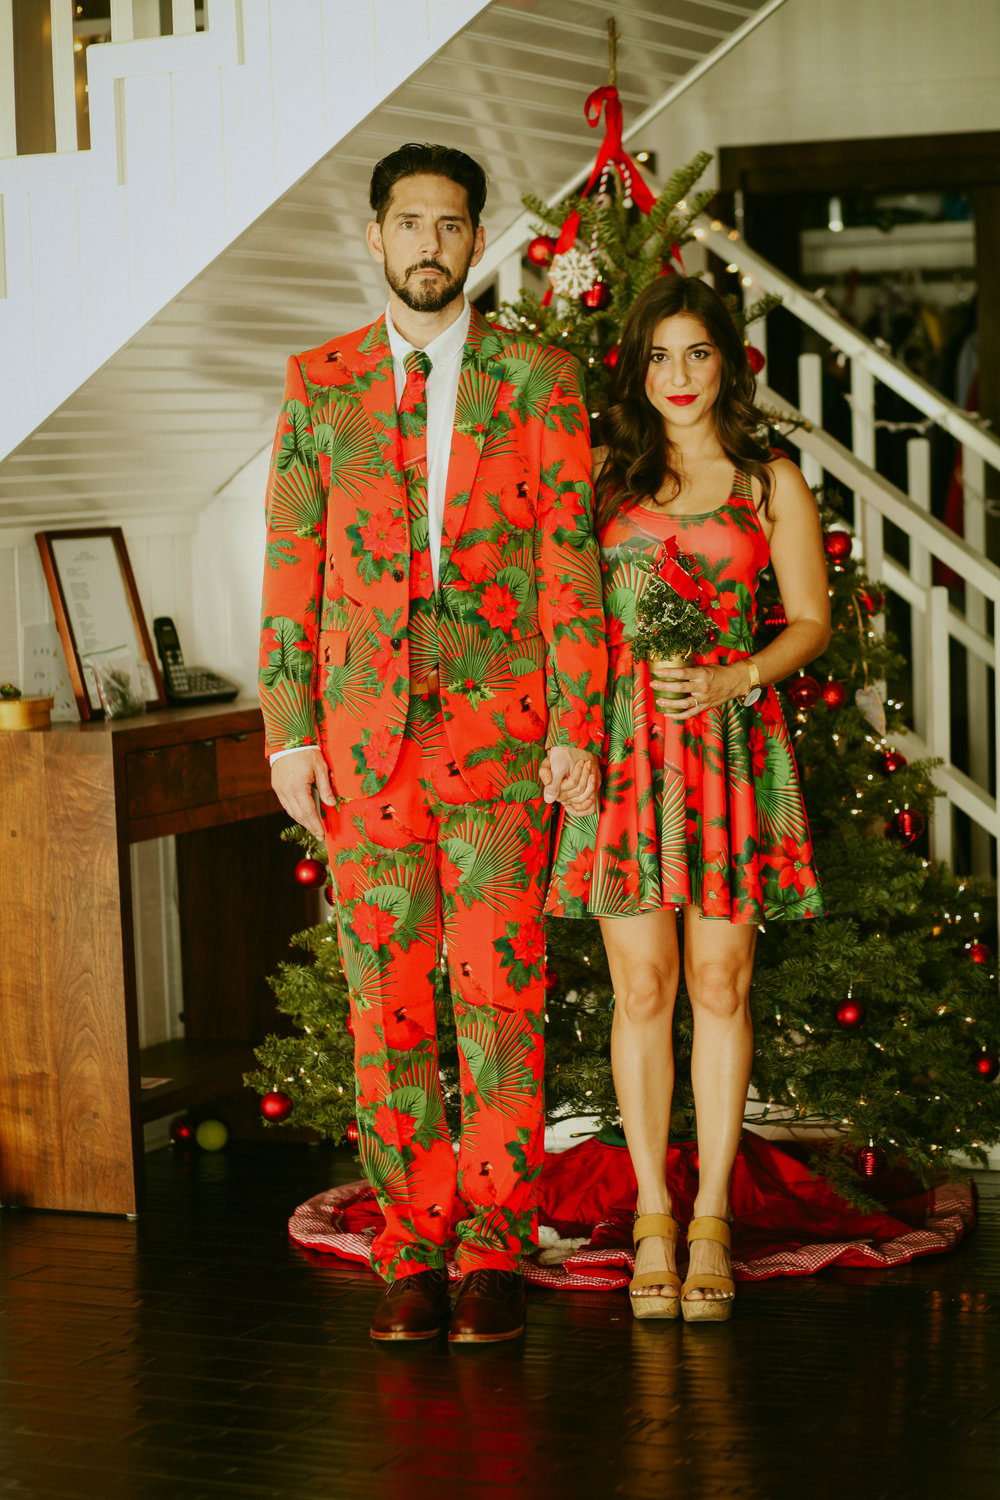 Christmas, Christmas tree, ugly sweater, party, celebrate, Shinesty Threads